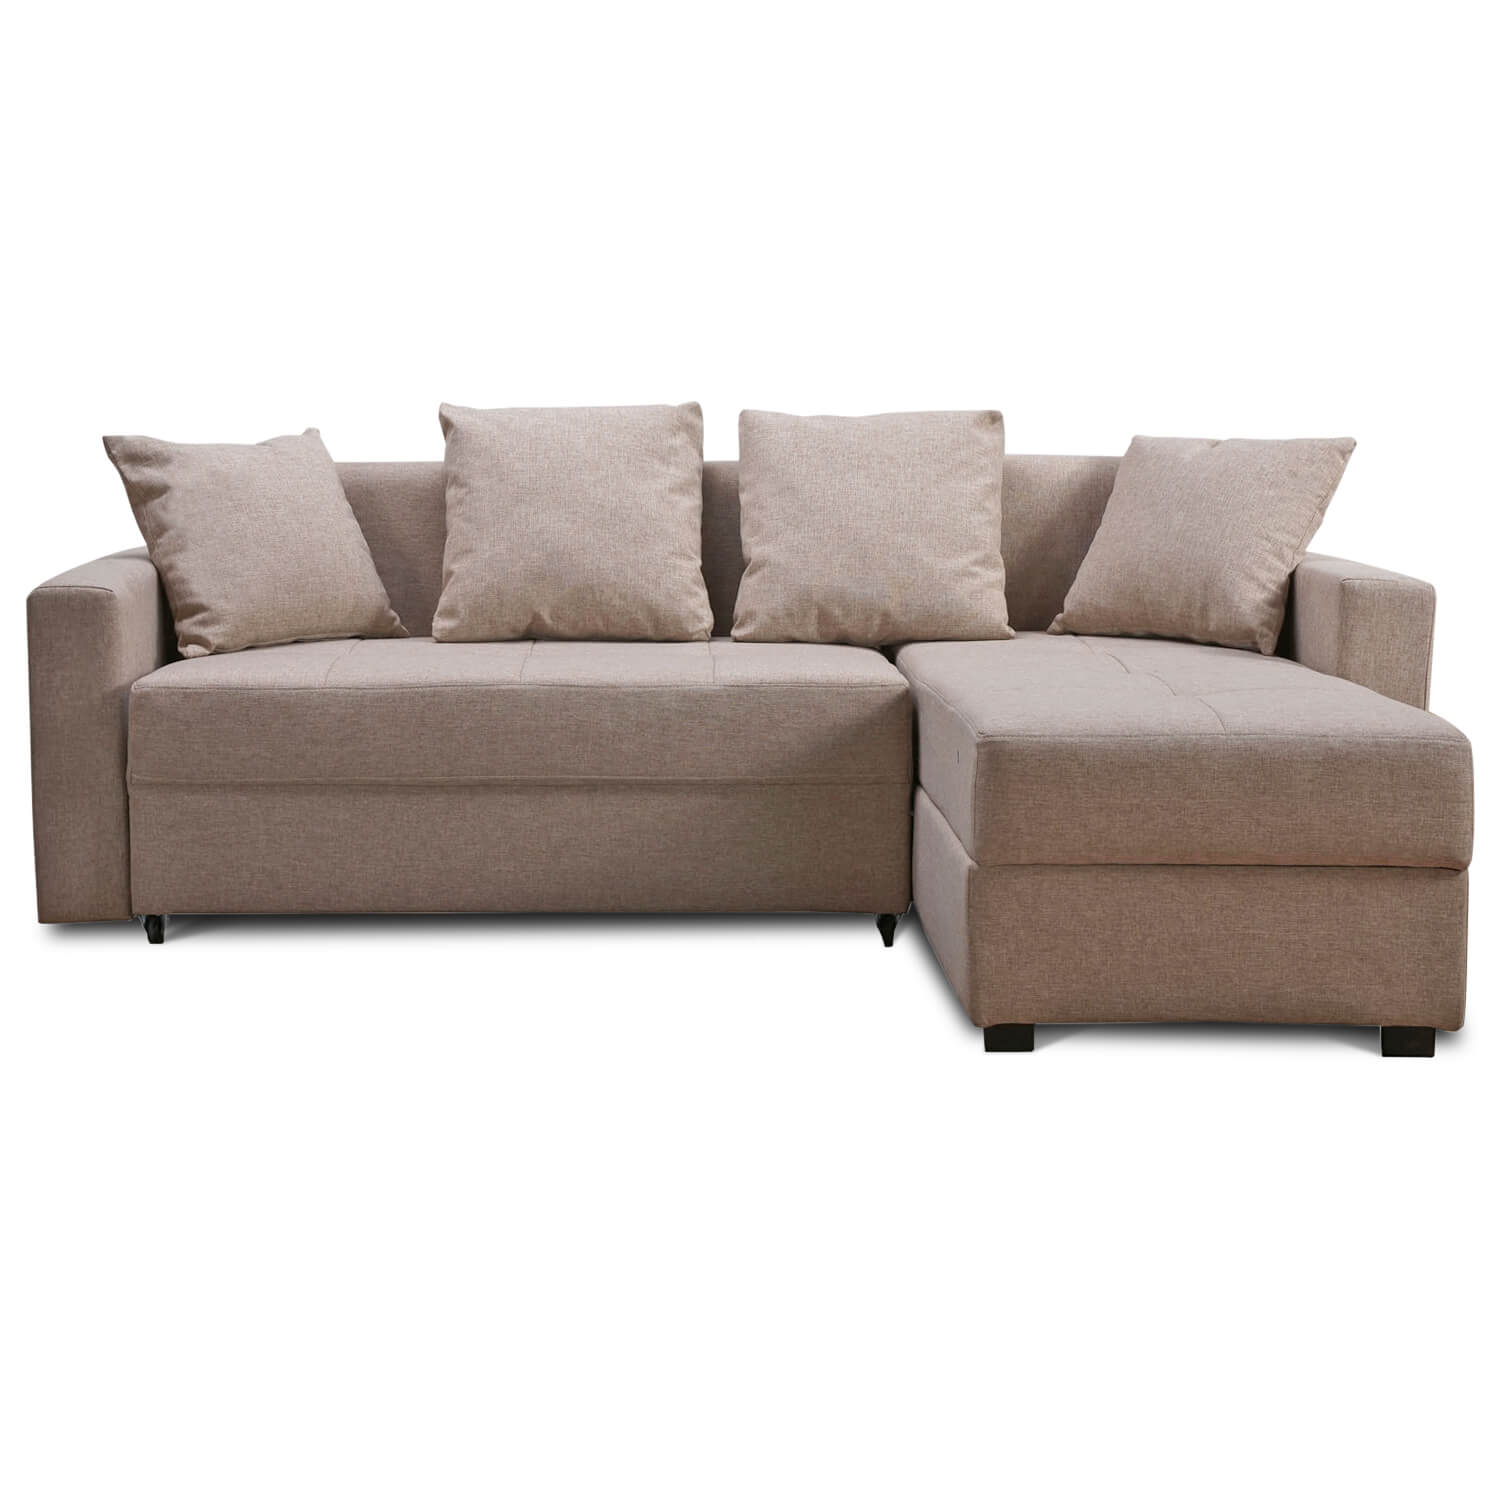 leather sofas in hyderabad india small round sofa uk block manufacturers